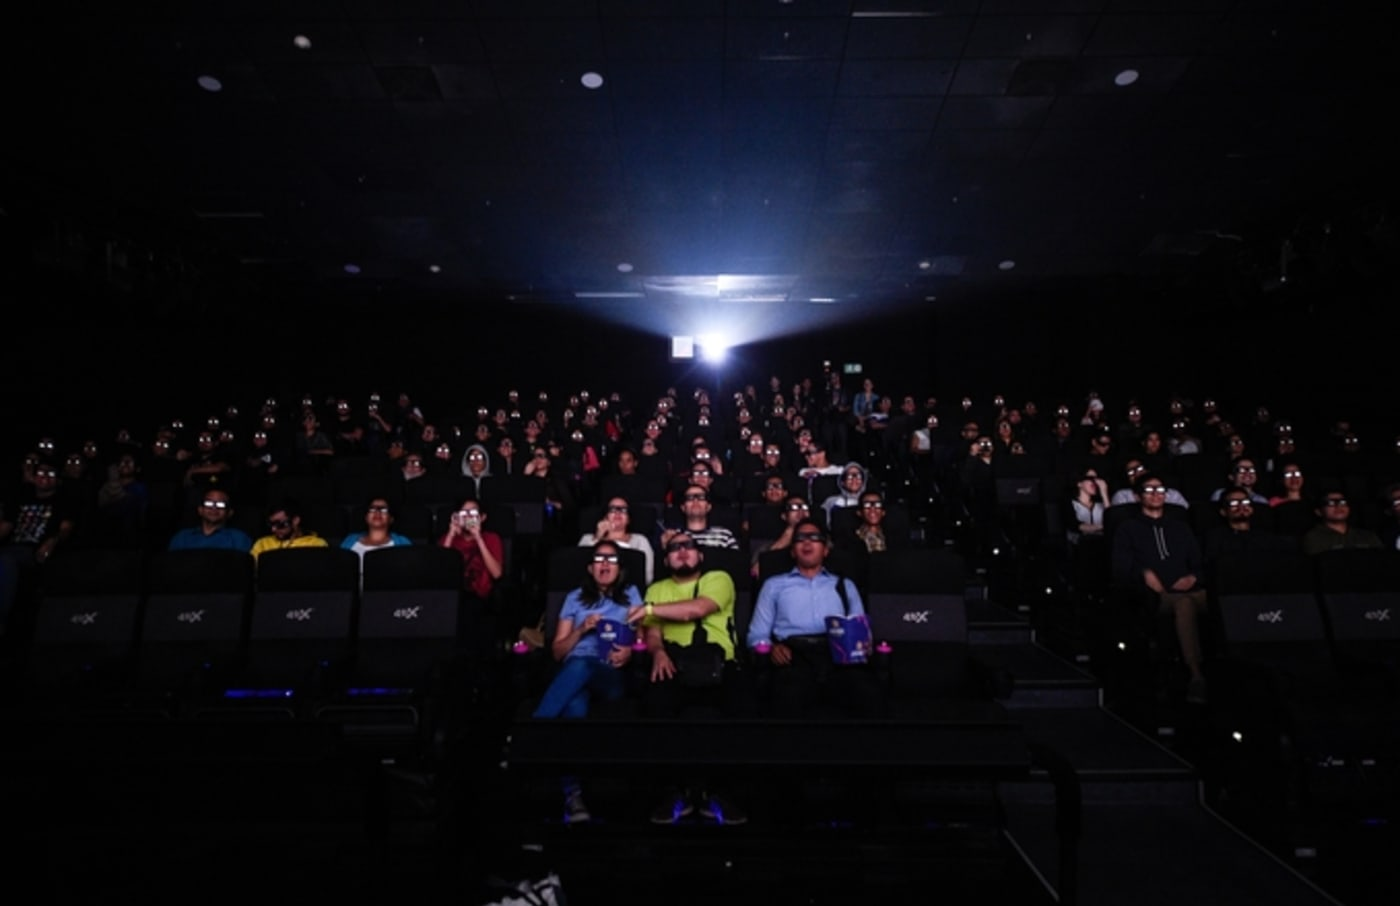 avengers endgame movie theater audience